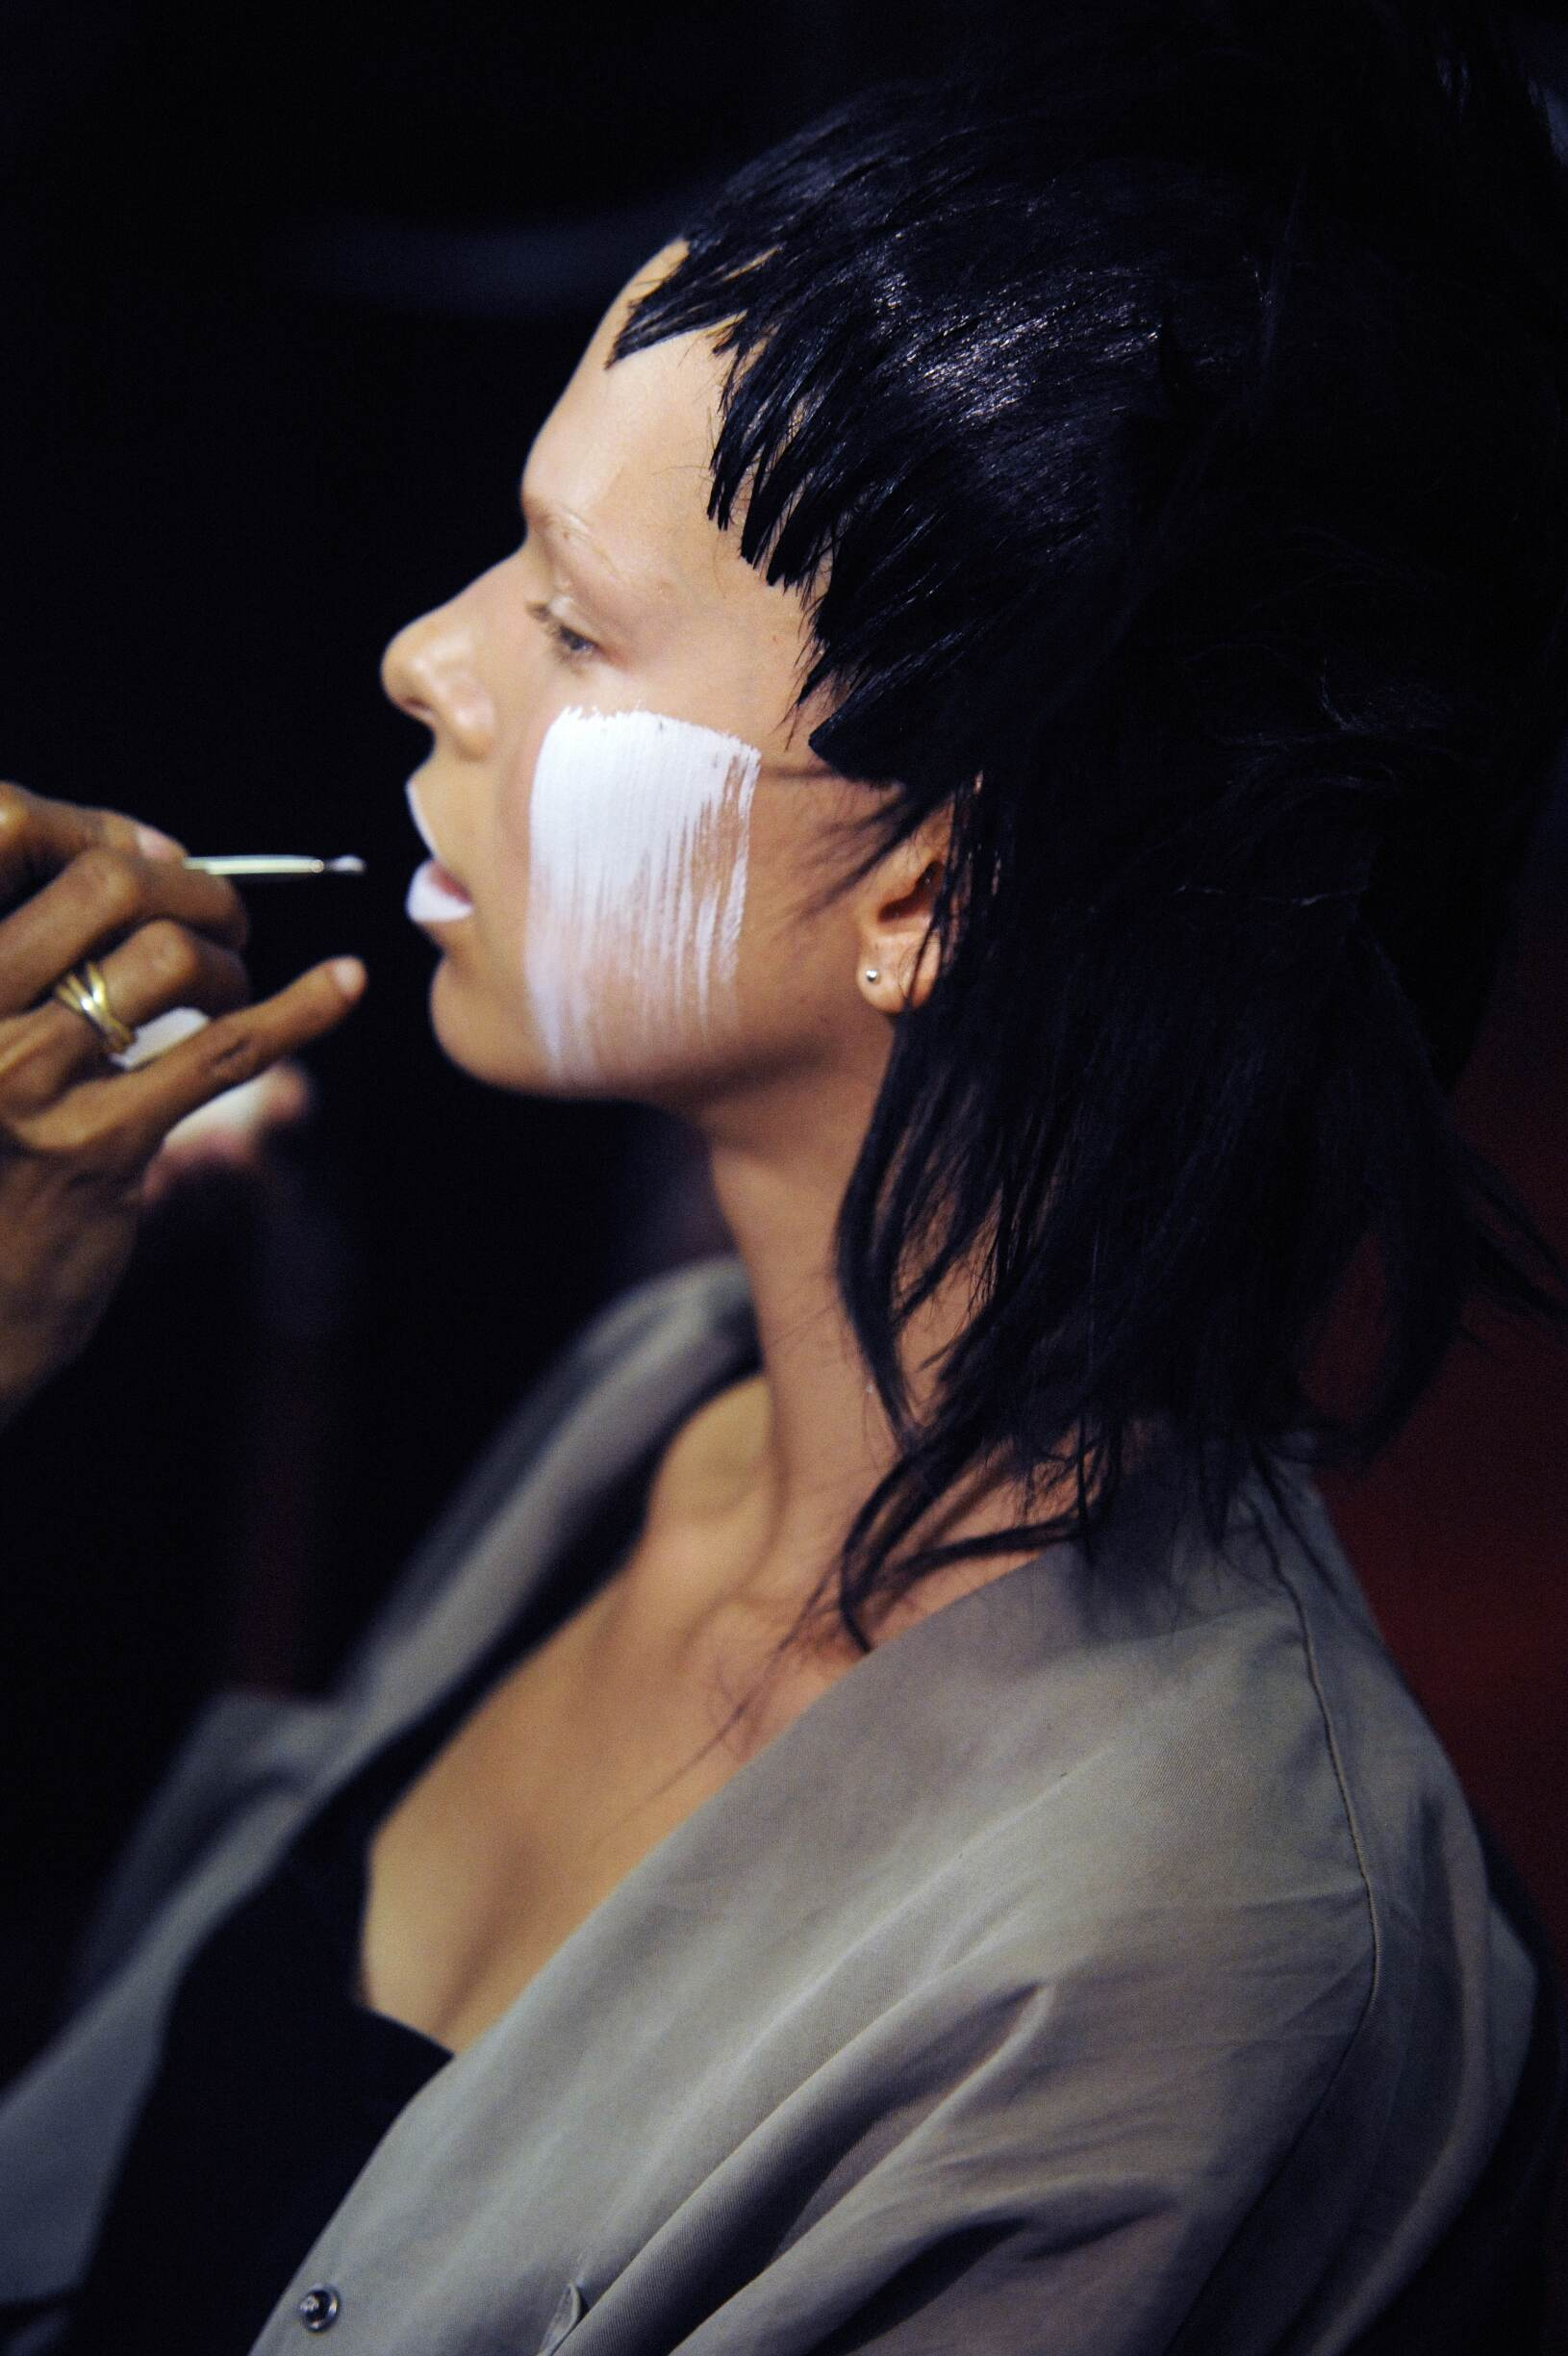 Yohji Yamamoto Backstage Fashion Model Make Up